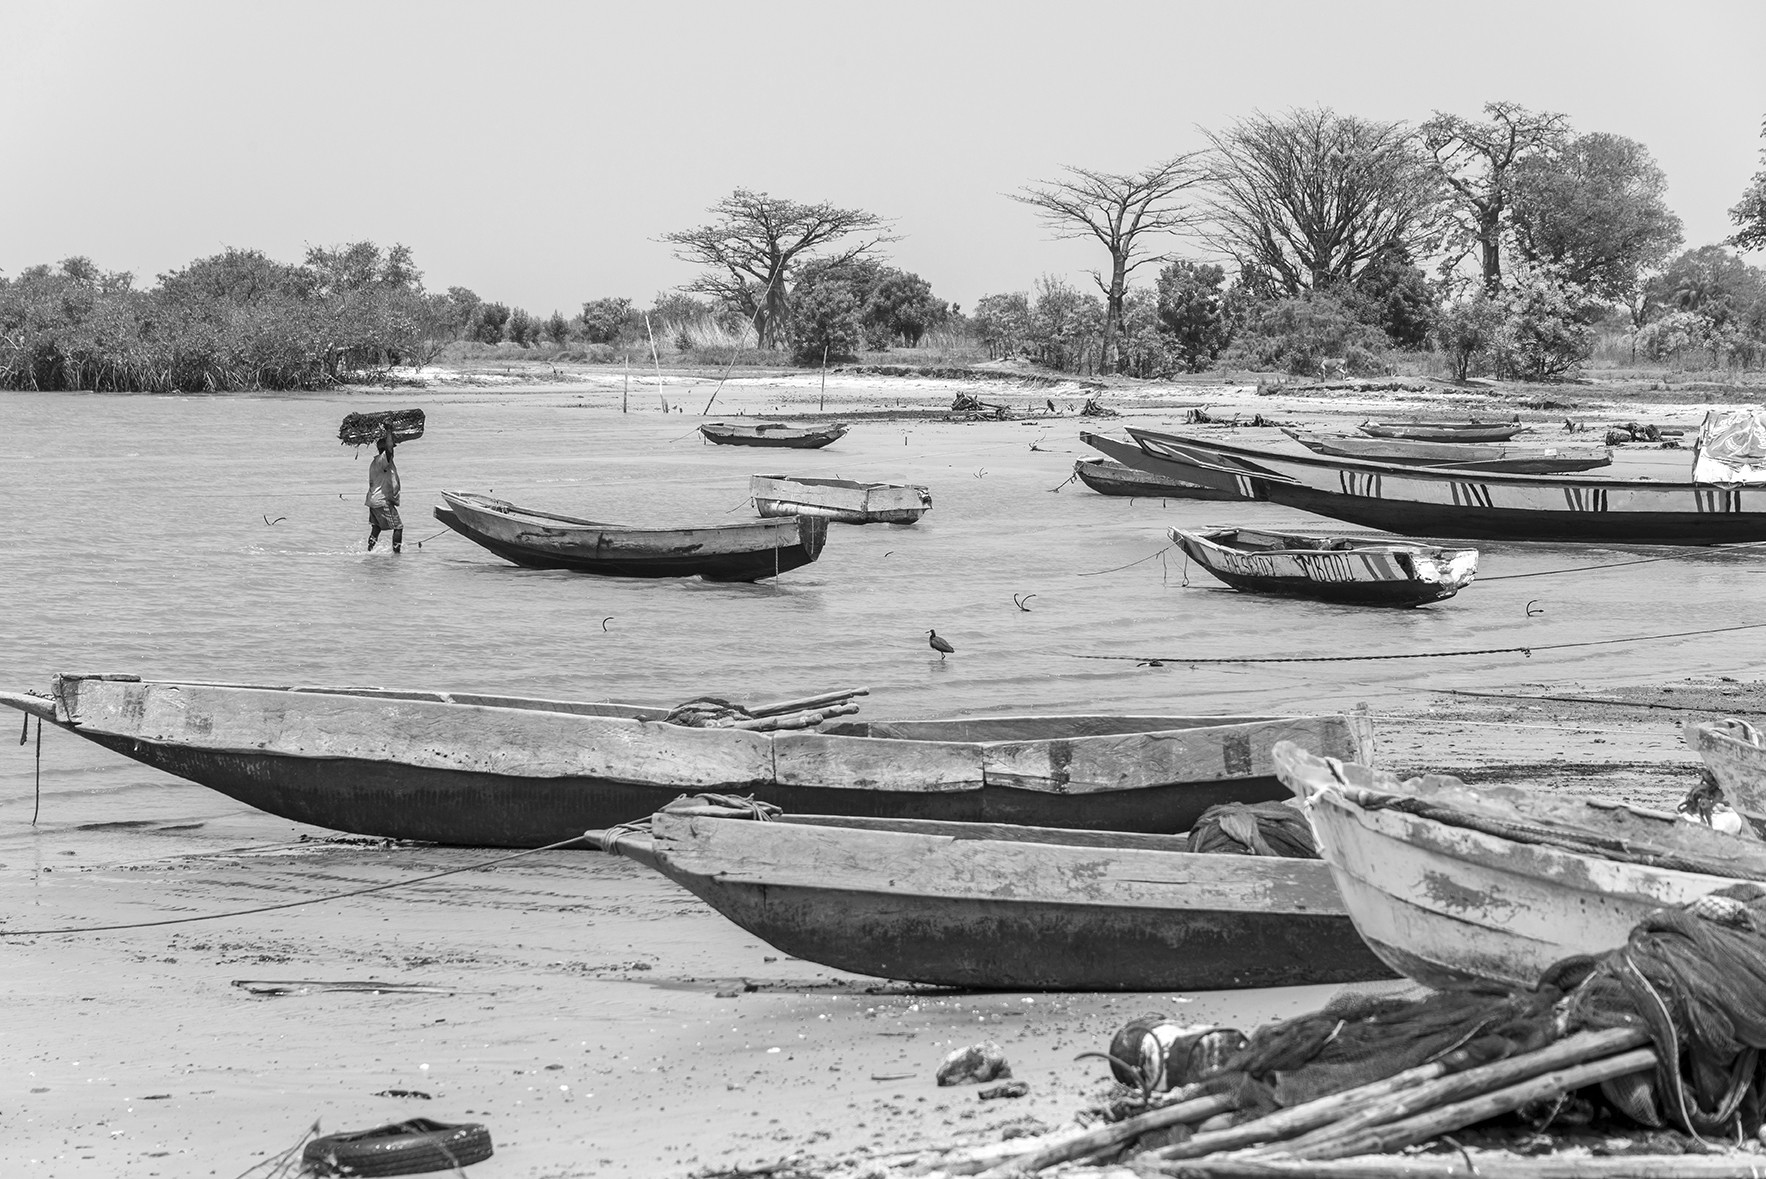 000113-Gambia-Albadarr